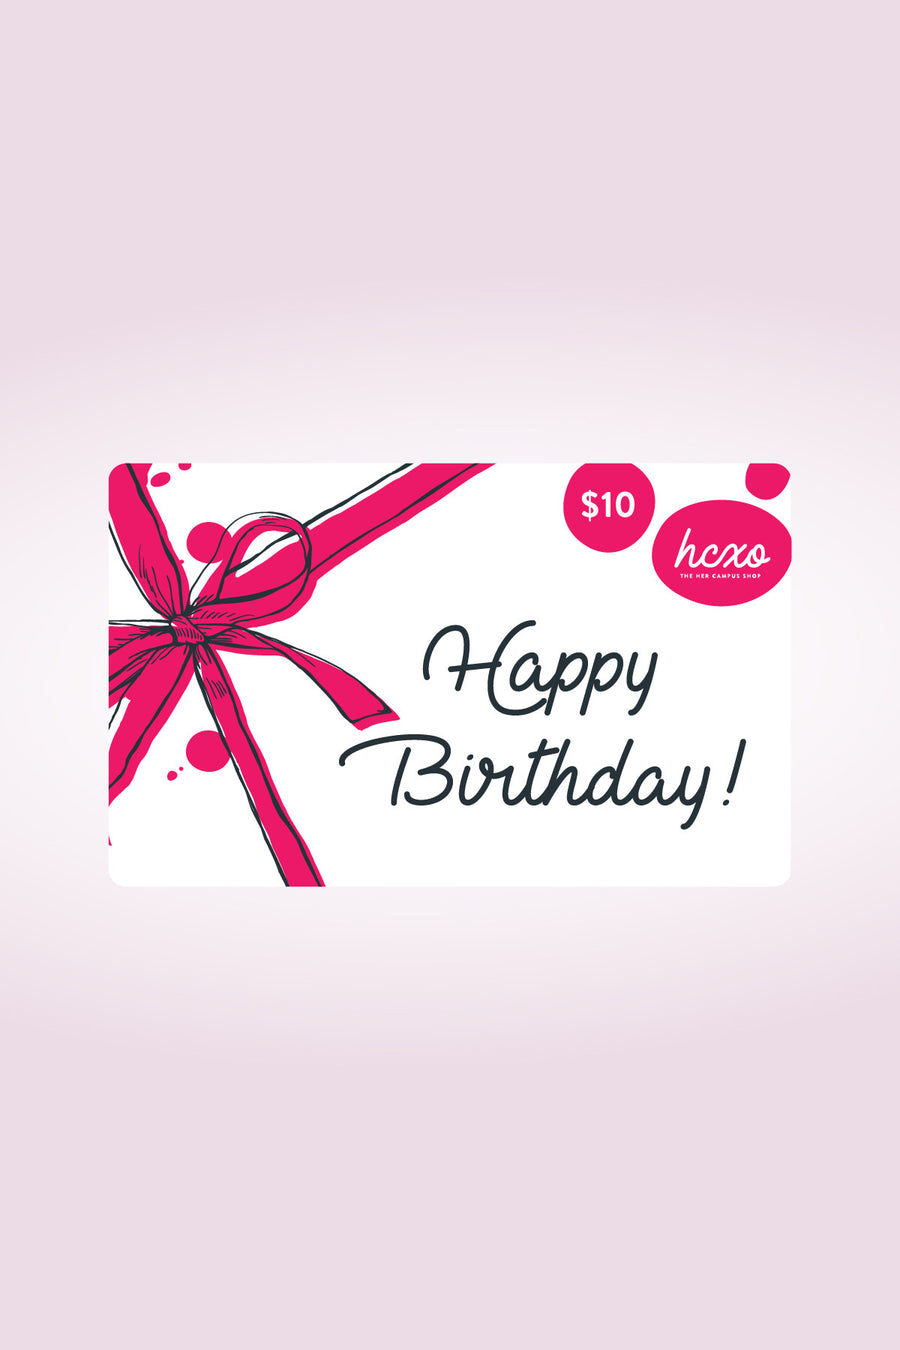 hcxo.shop Gift Card - Happy Birthday